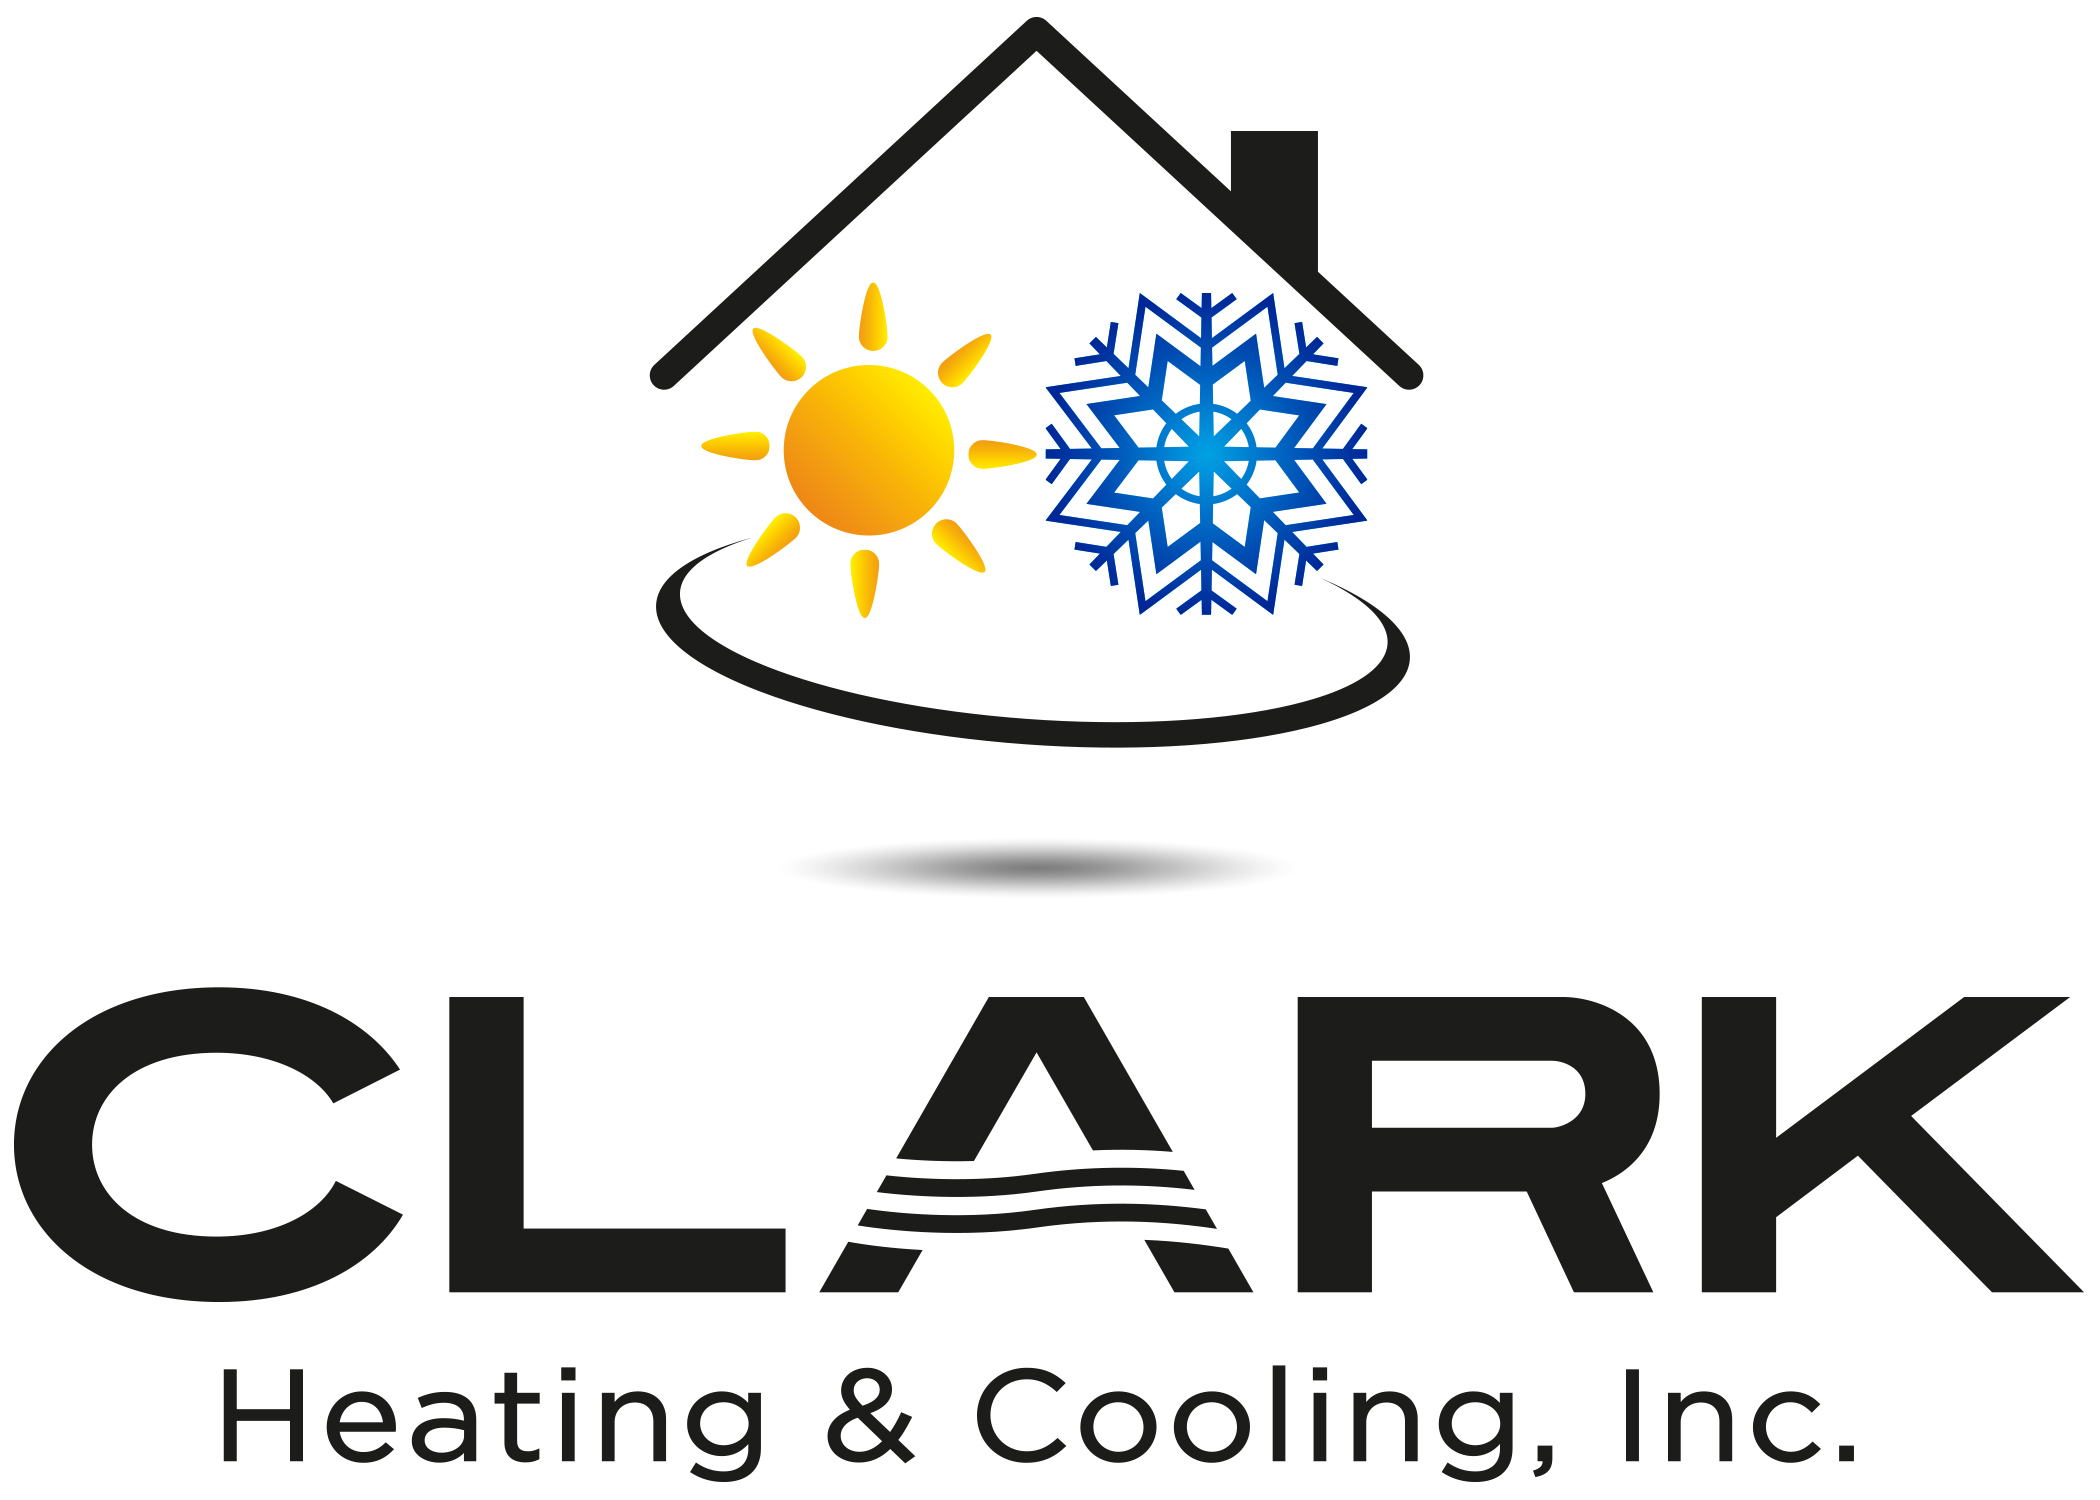 Clark Heating and Cooling logo, located in Milford Ohio